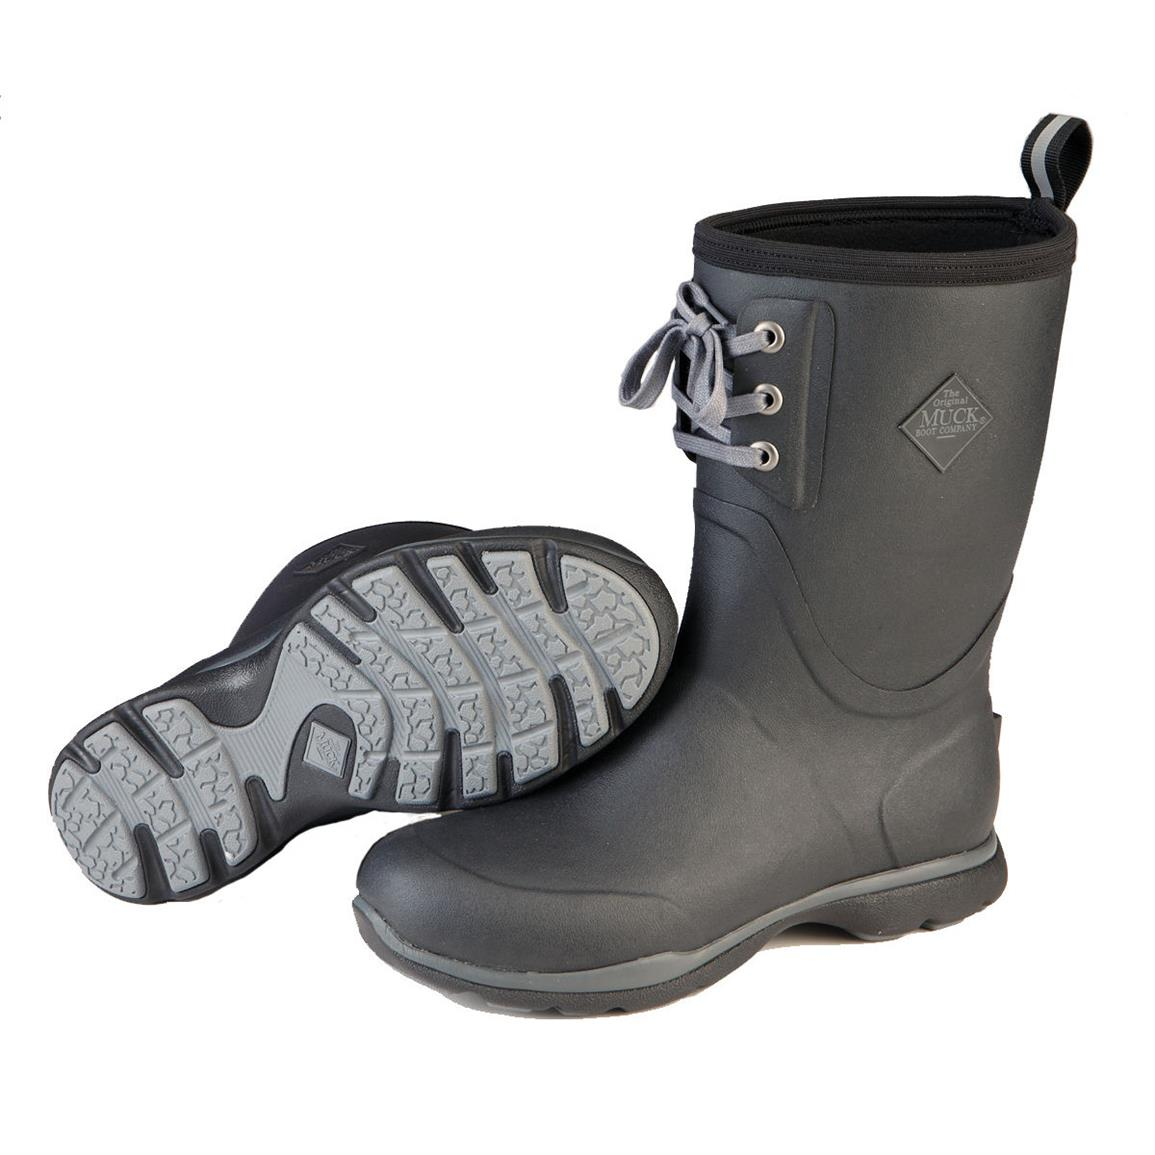 Muck Arctic Excursion Lace Mid Waterproof Insulated Rubber Boots, Black